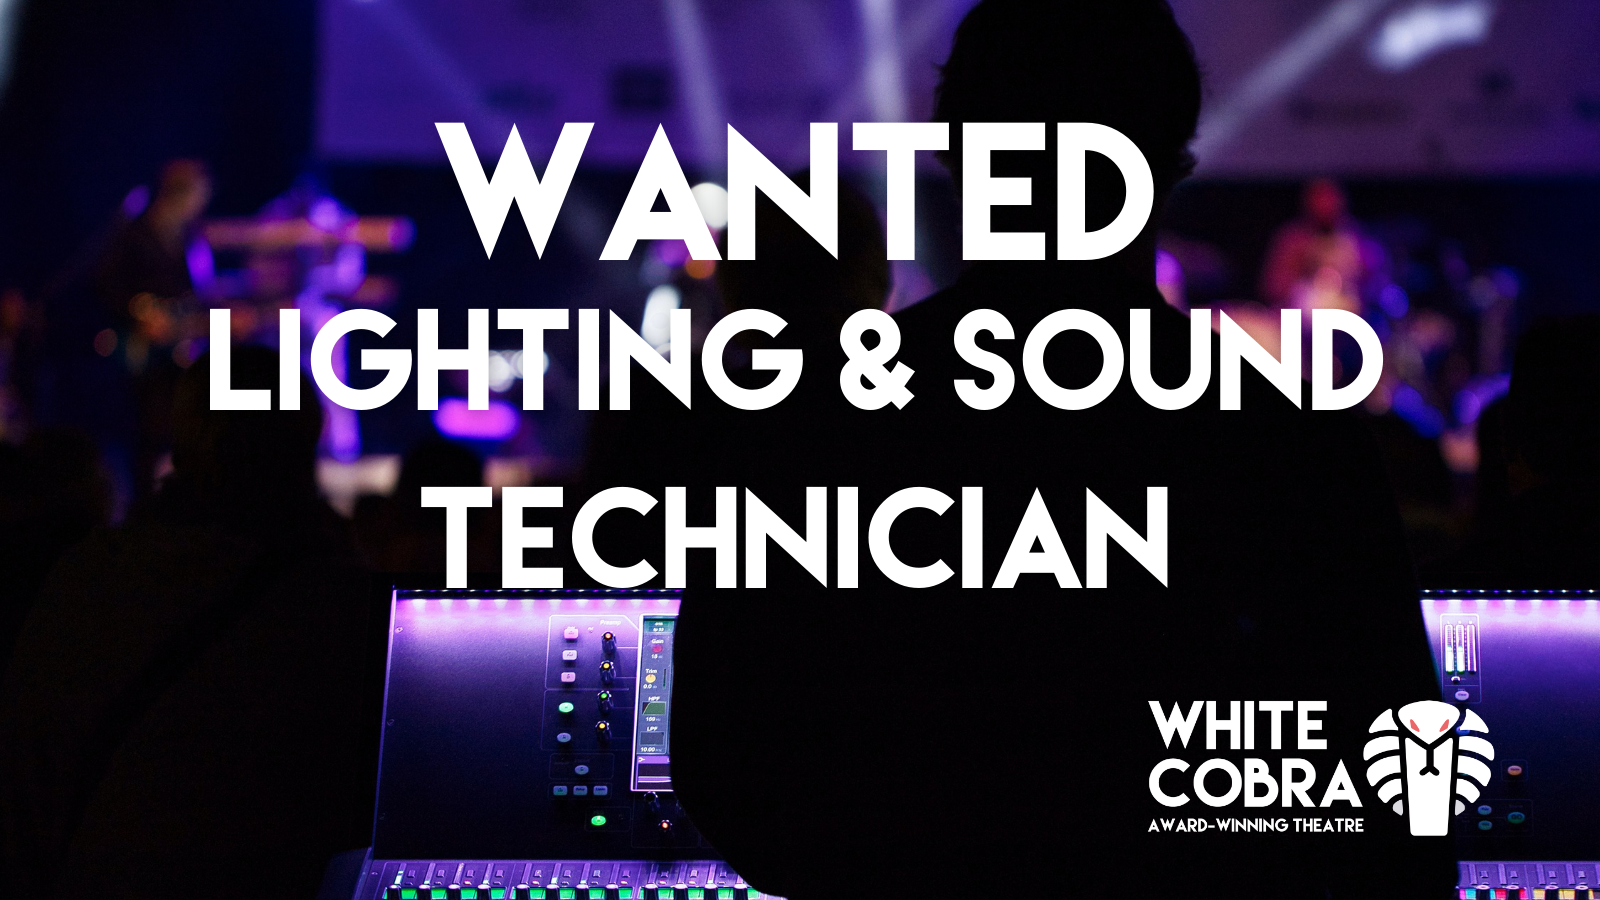 WANTED: Lighting and Sound Technician